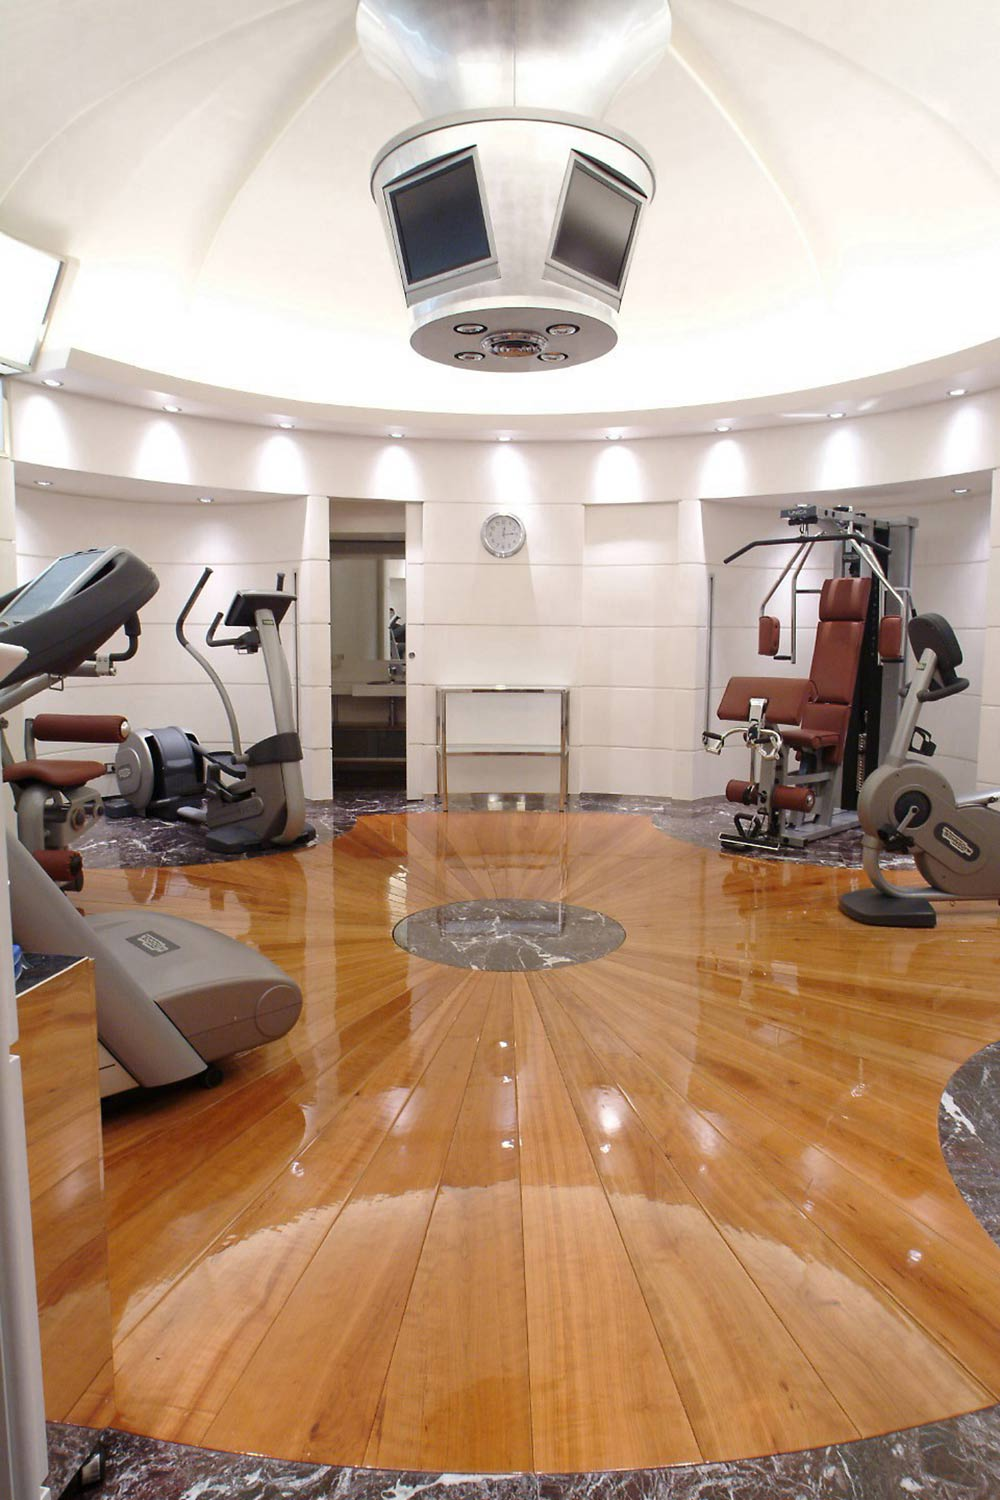 Fitness Center at Hotel Majestic RomaItaly